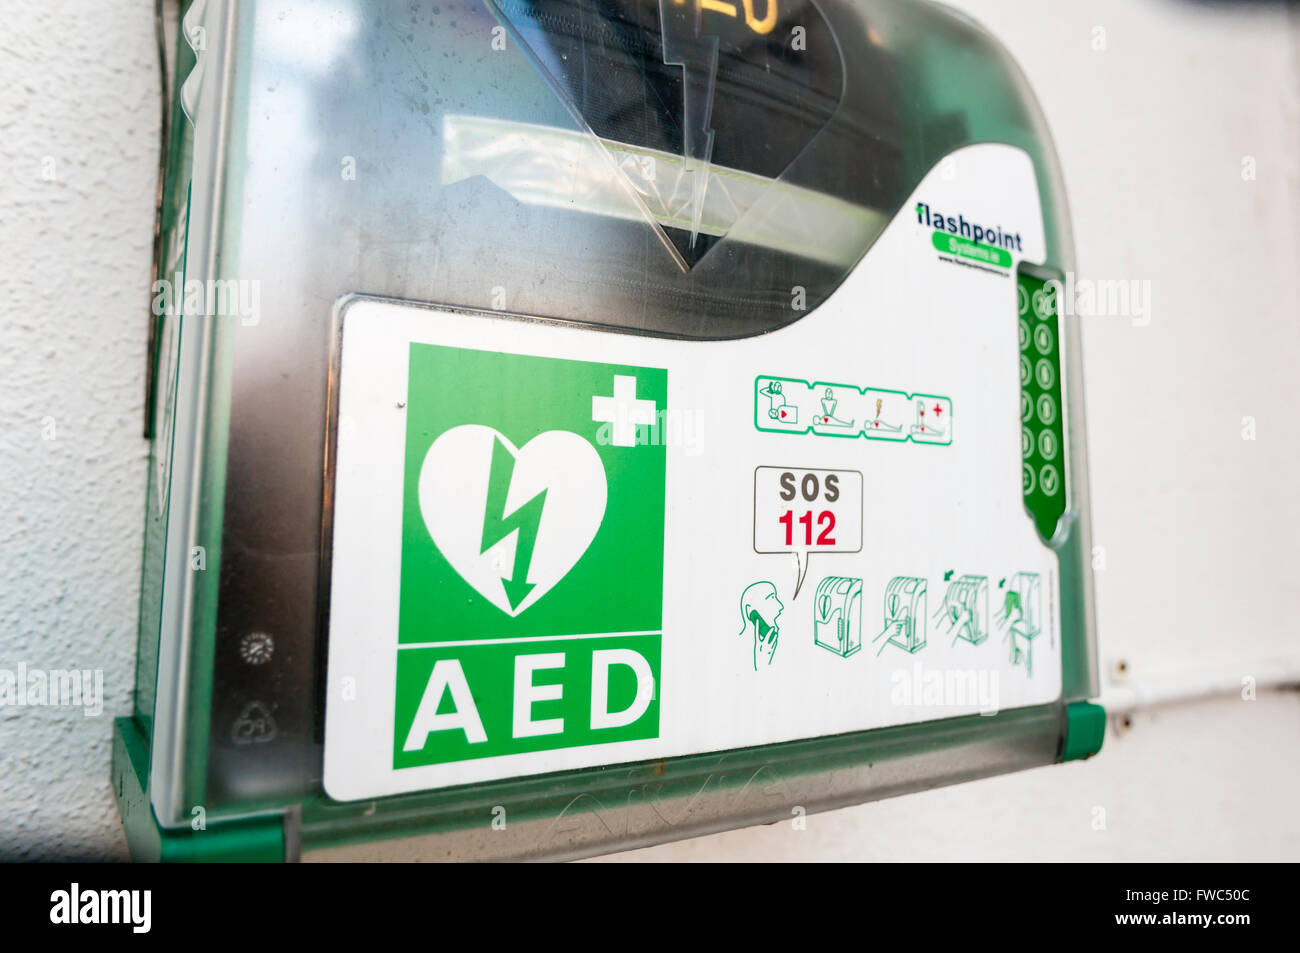 Automated External Defibrillator (AED) inside a case with a key code lock to prevent unauthorised removal. - Stock Image